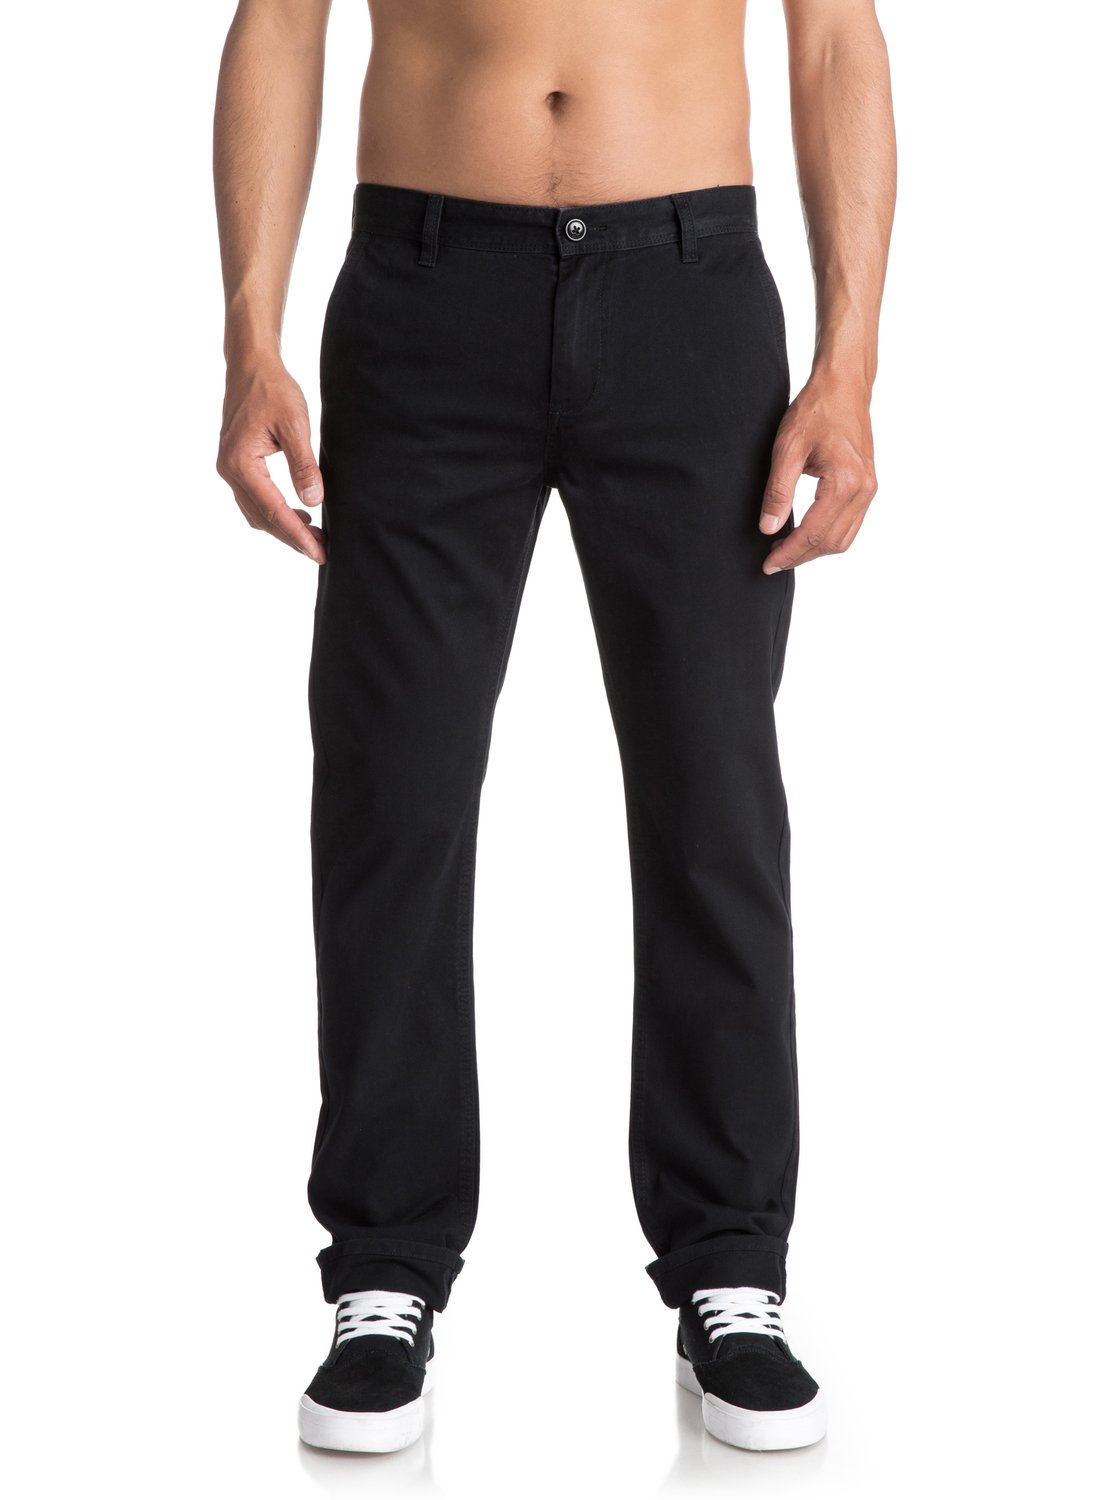 Quiksilver-Everyday-Pantalon-chino-pour-Homme-EQYNP03093